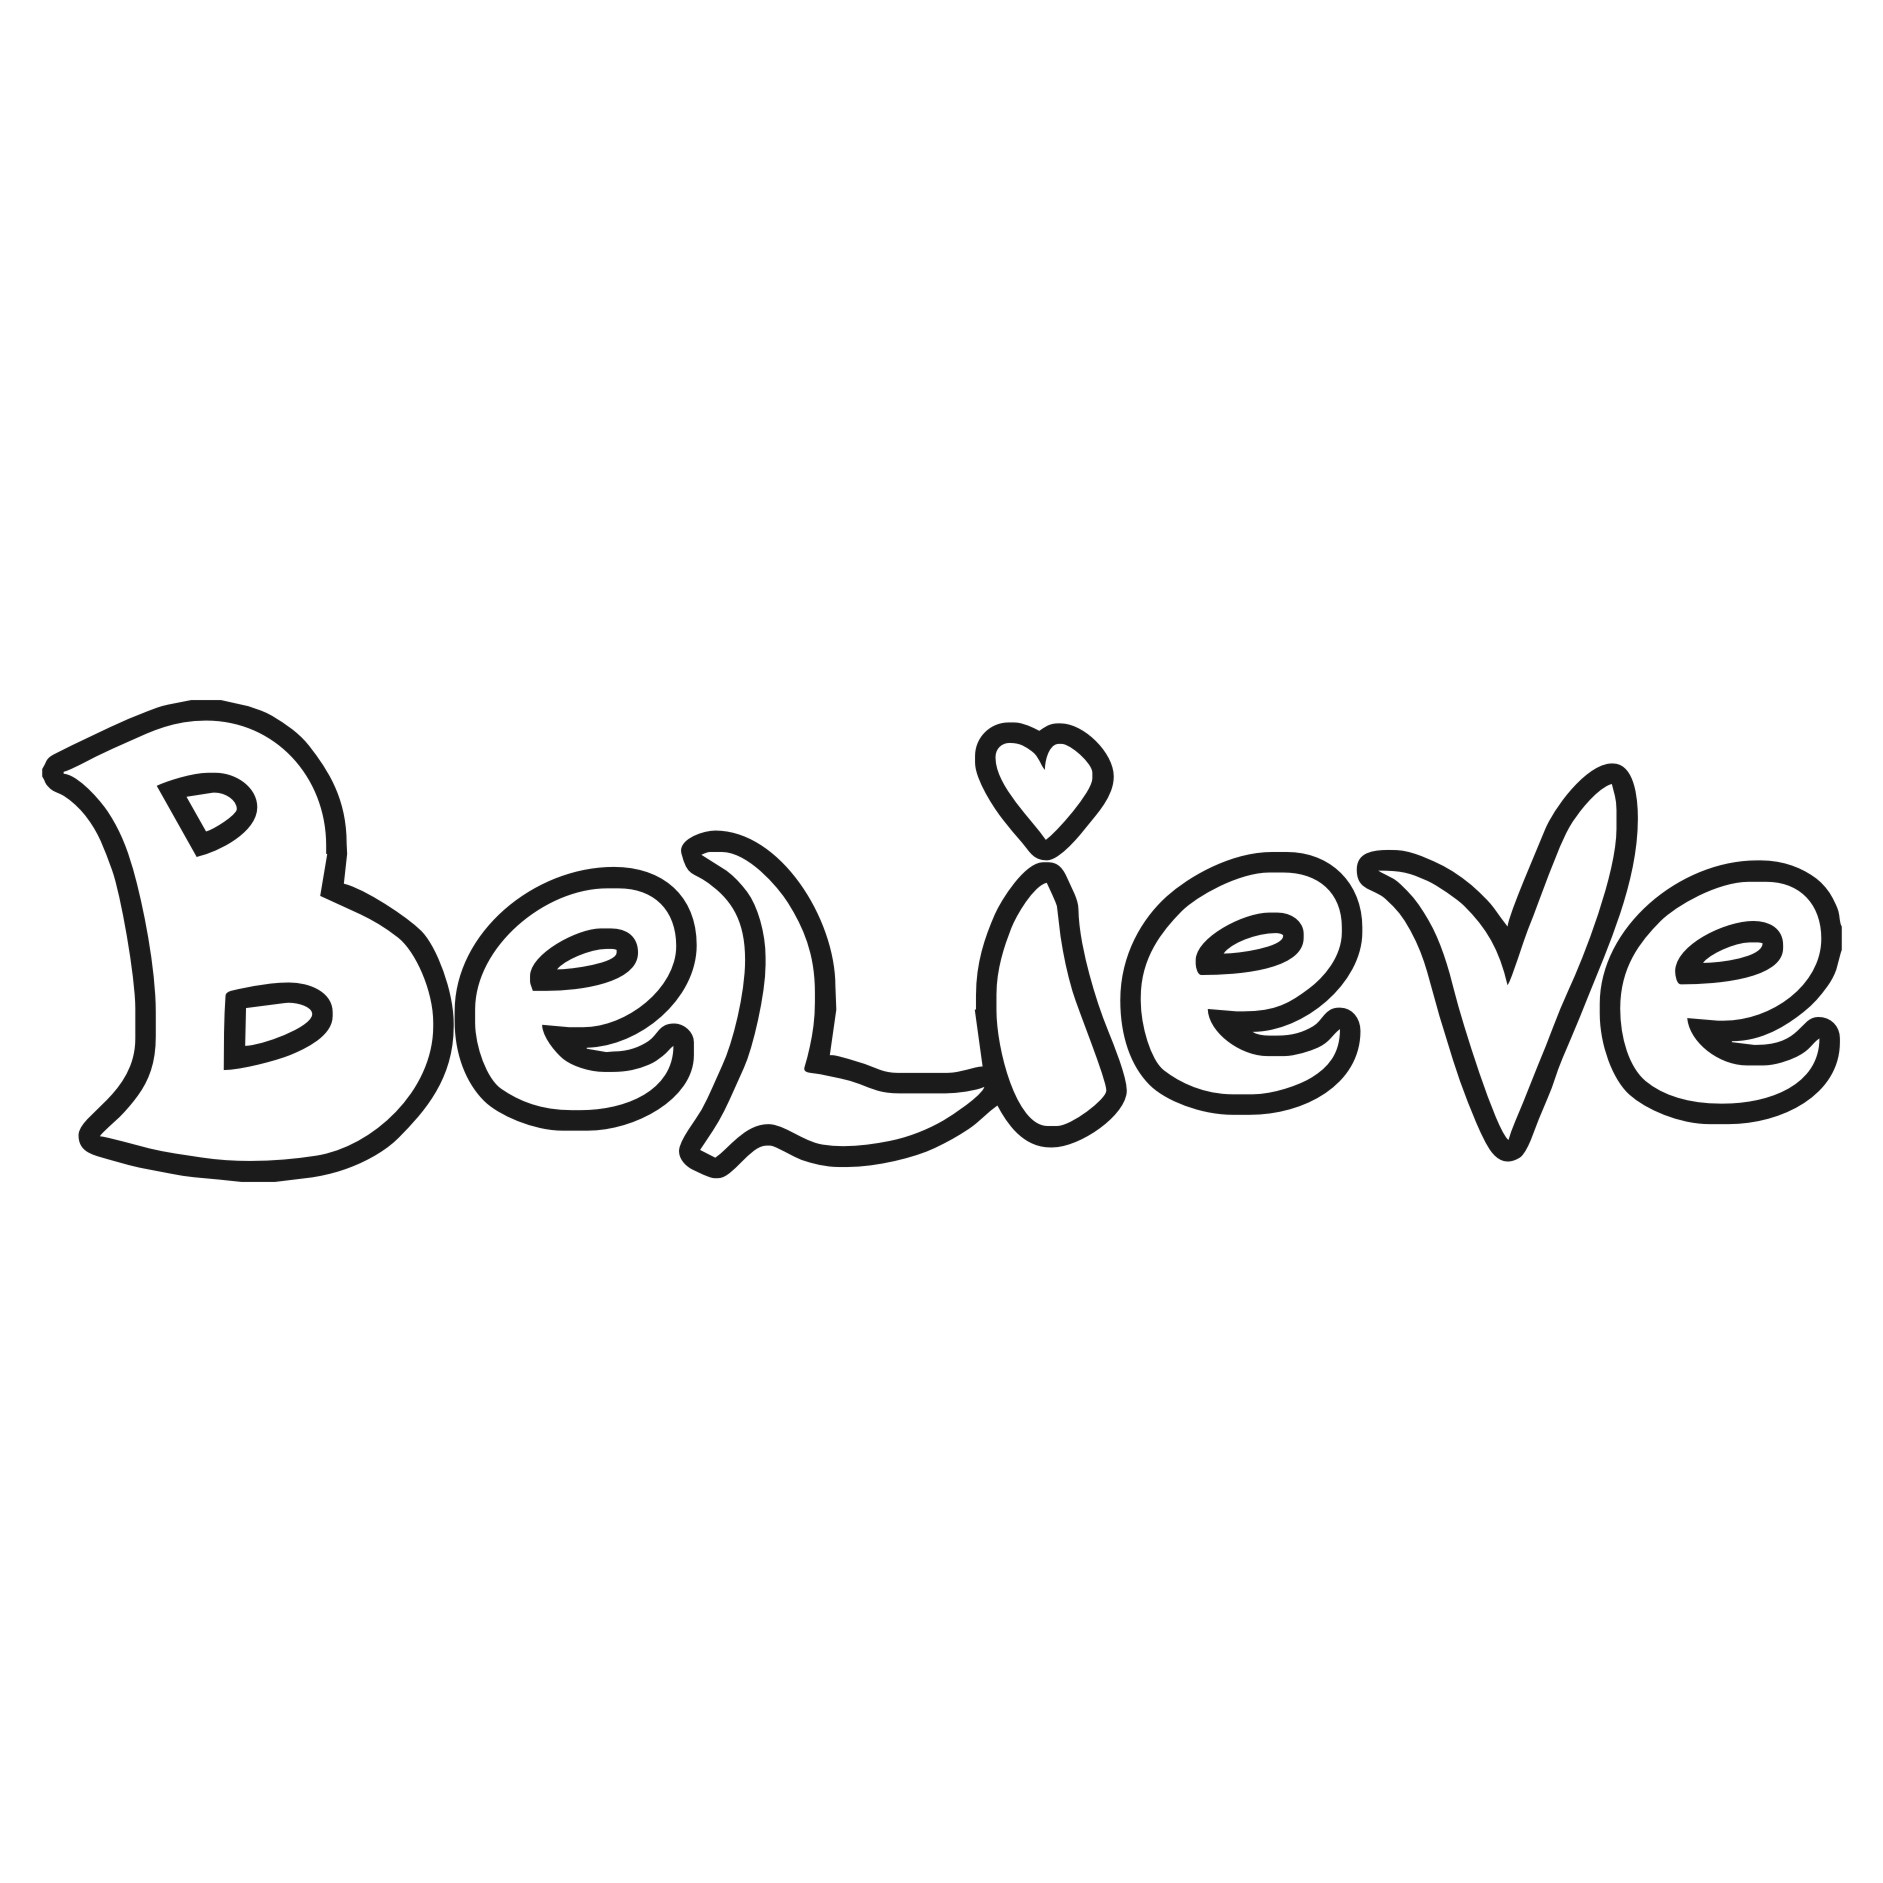 Clip Art of the Word Believe.